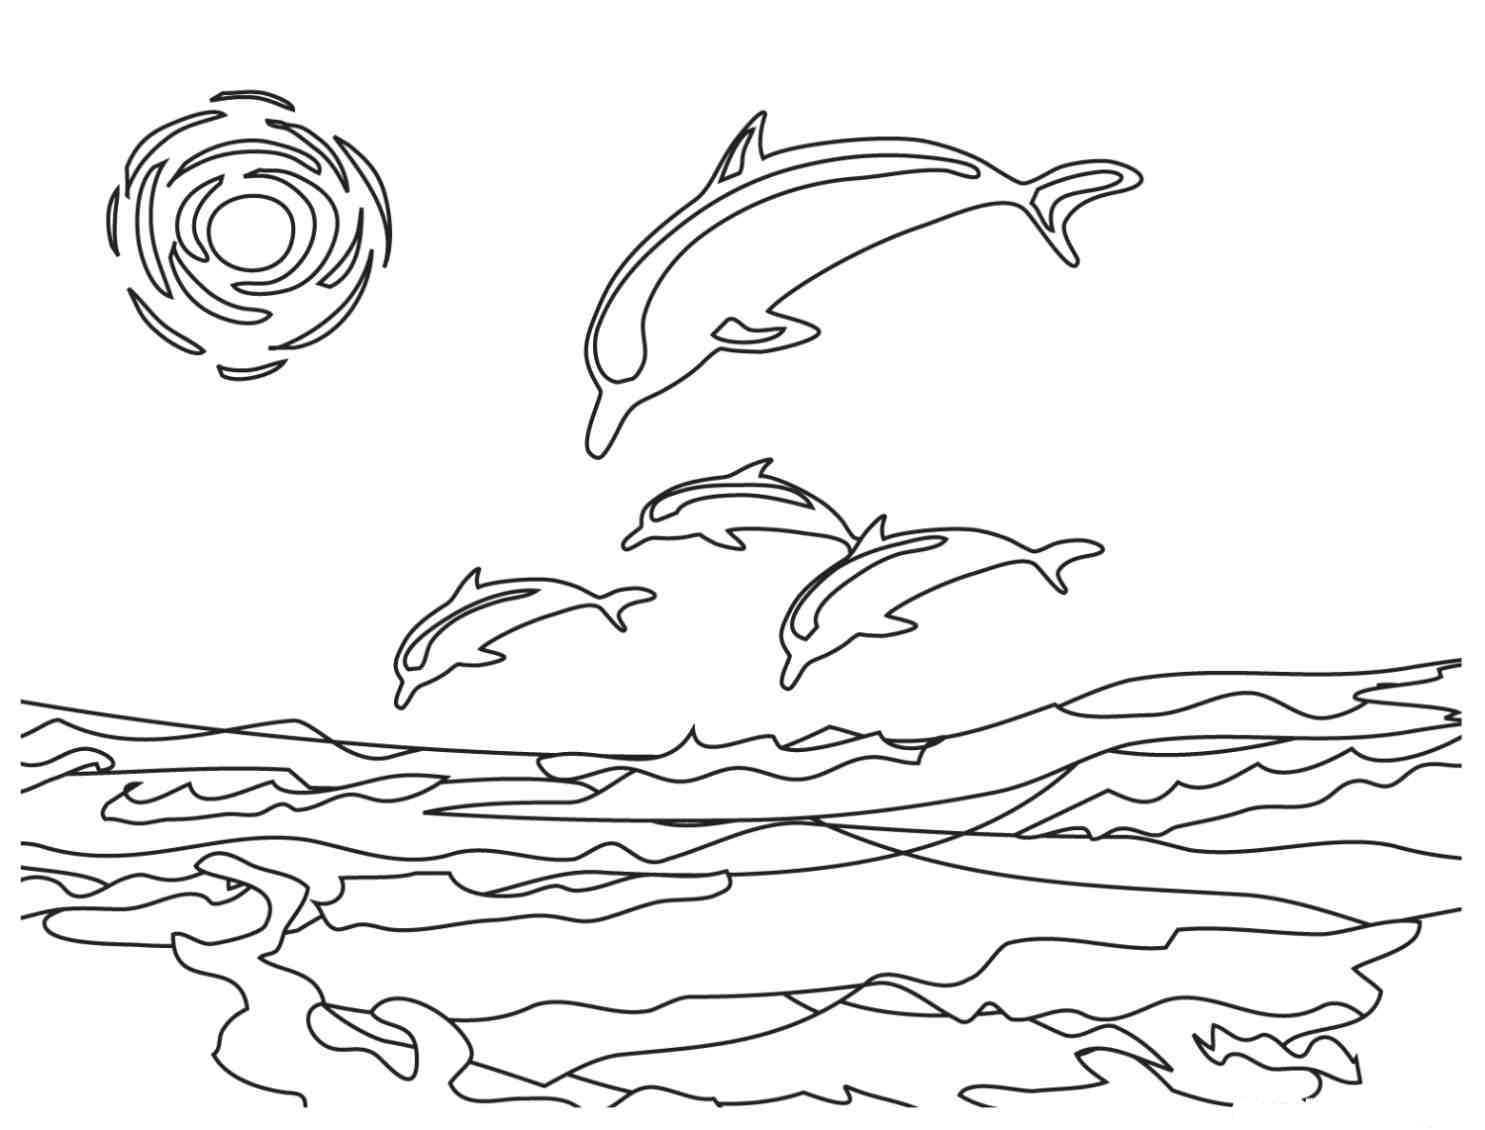 dolphin coloring pages free printable free printable dolphin coloring pages for kids free dolphin printable coloring pages